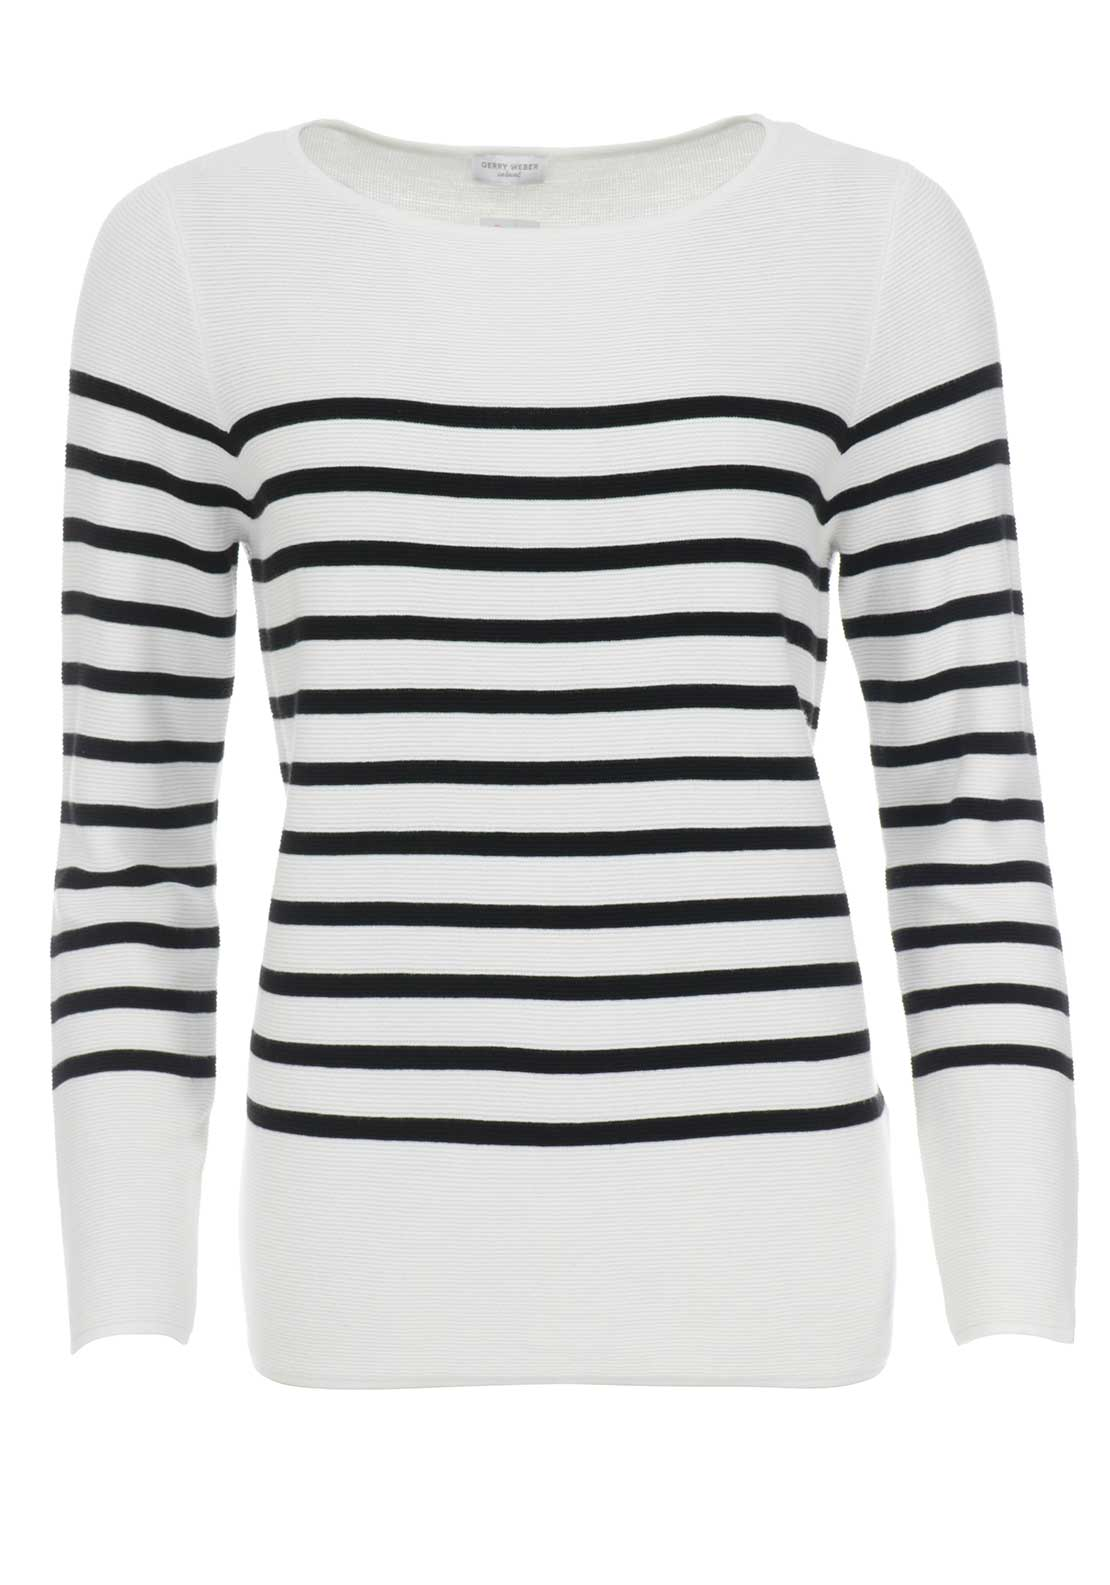 Gerry Weber Striped Rib Knit Jumper, White & Black